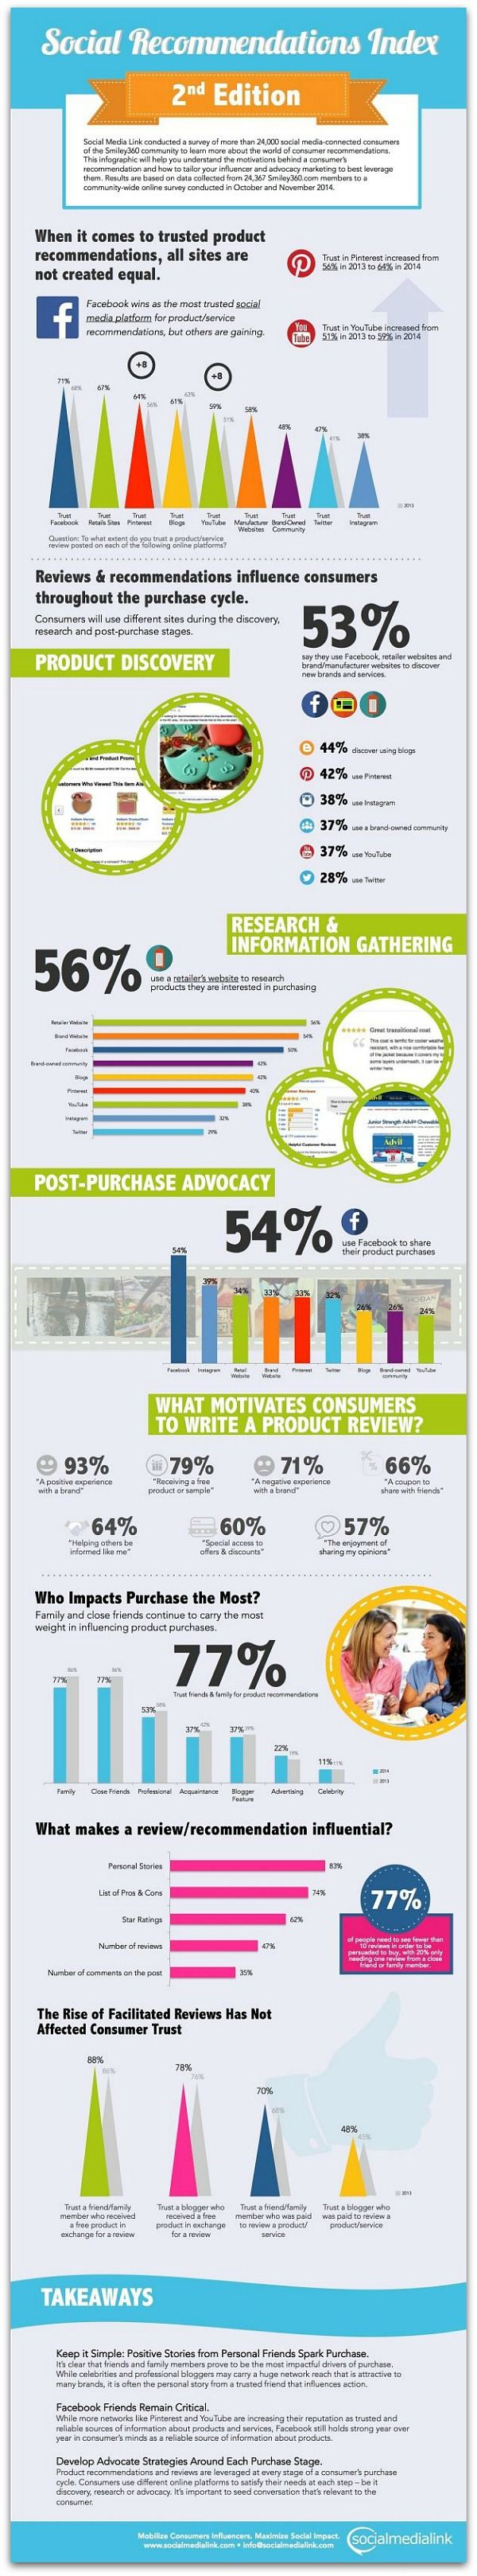 Infographic: What makes consumers endorse brands on social media | Articles | Main